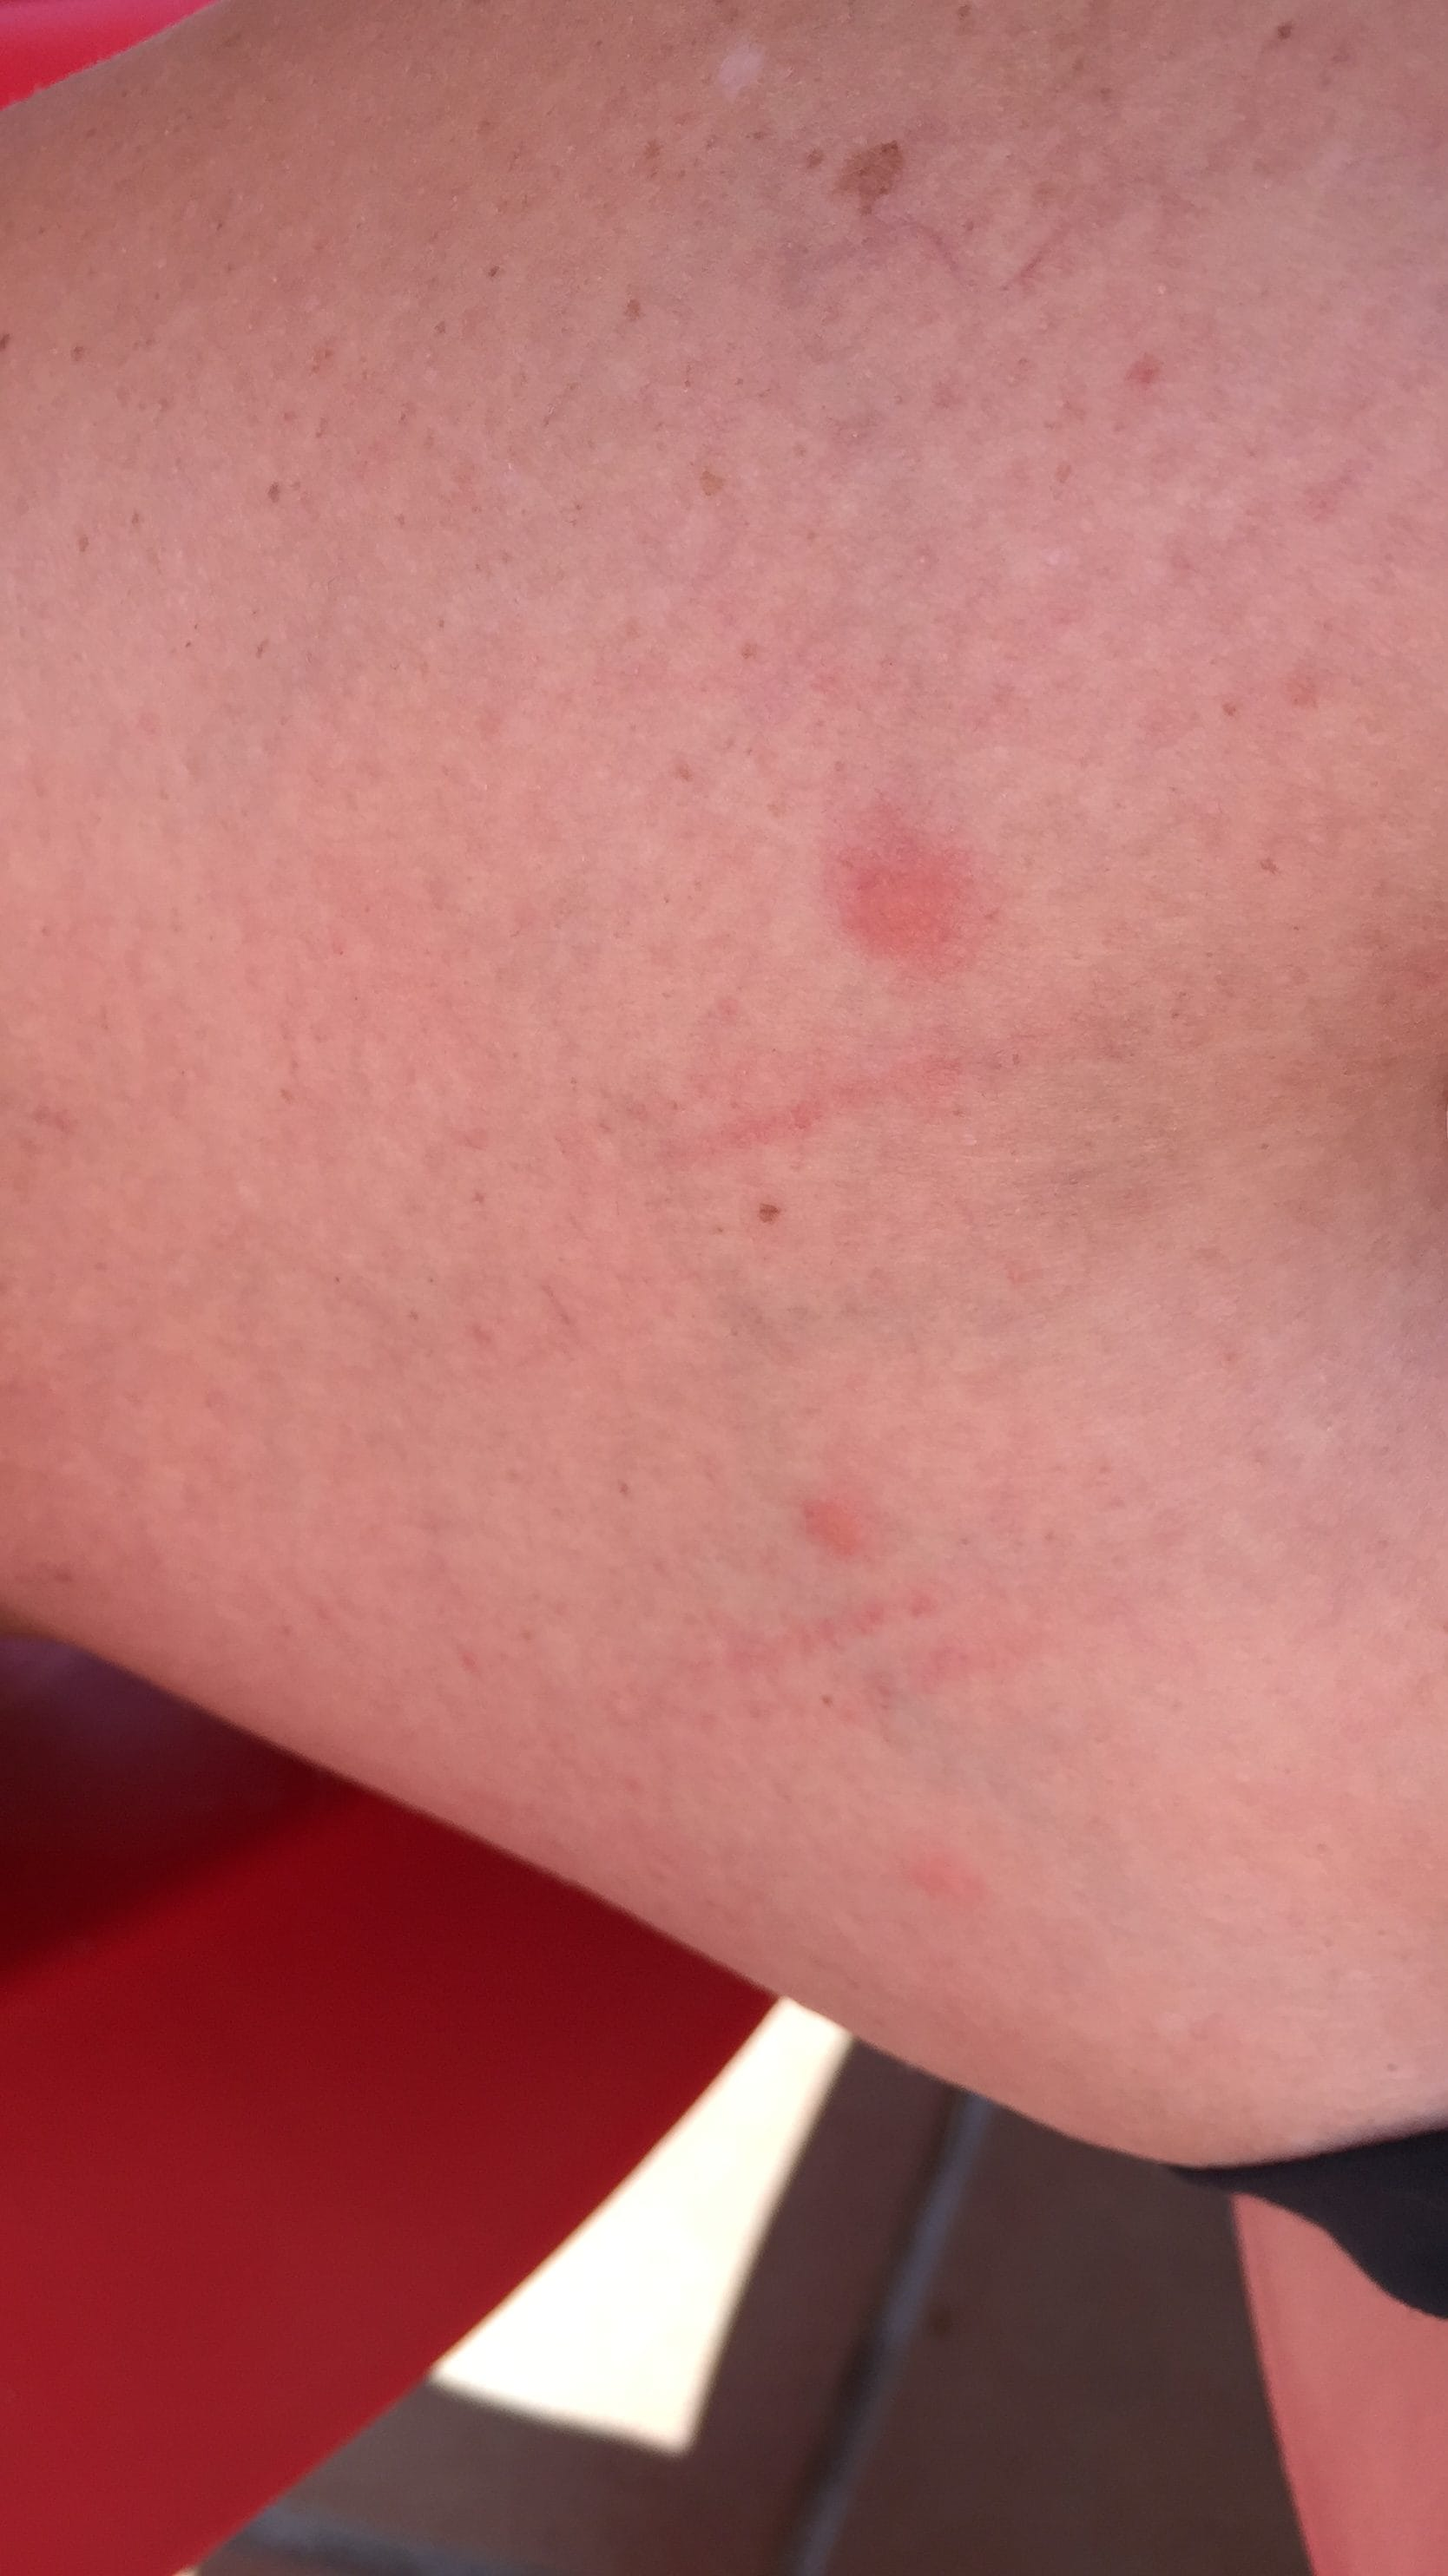 First signs of bedbug bites on legs